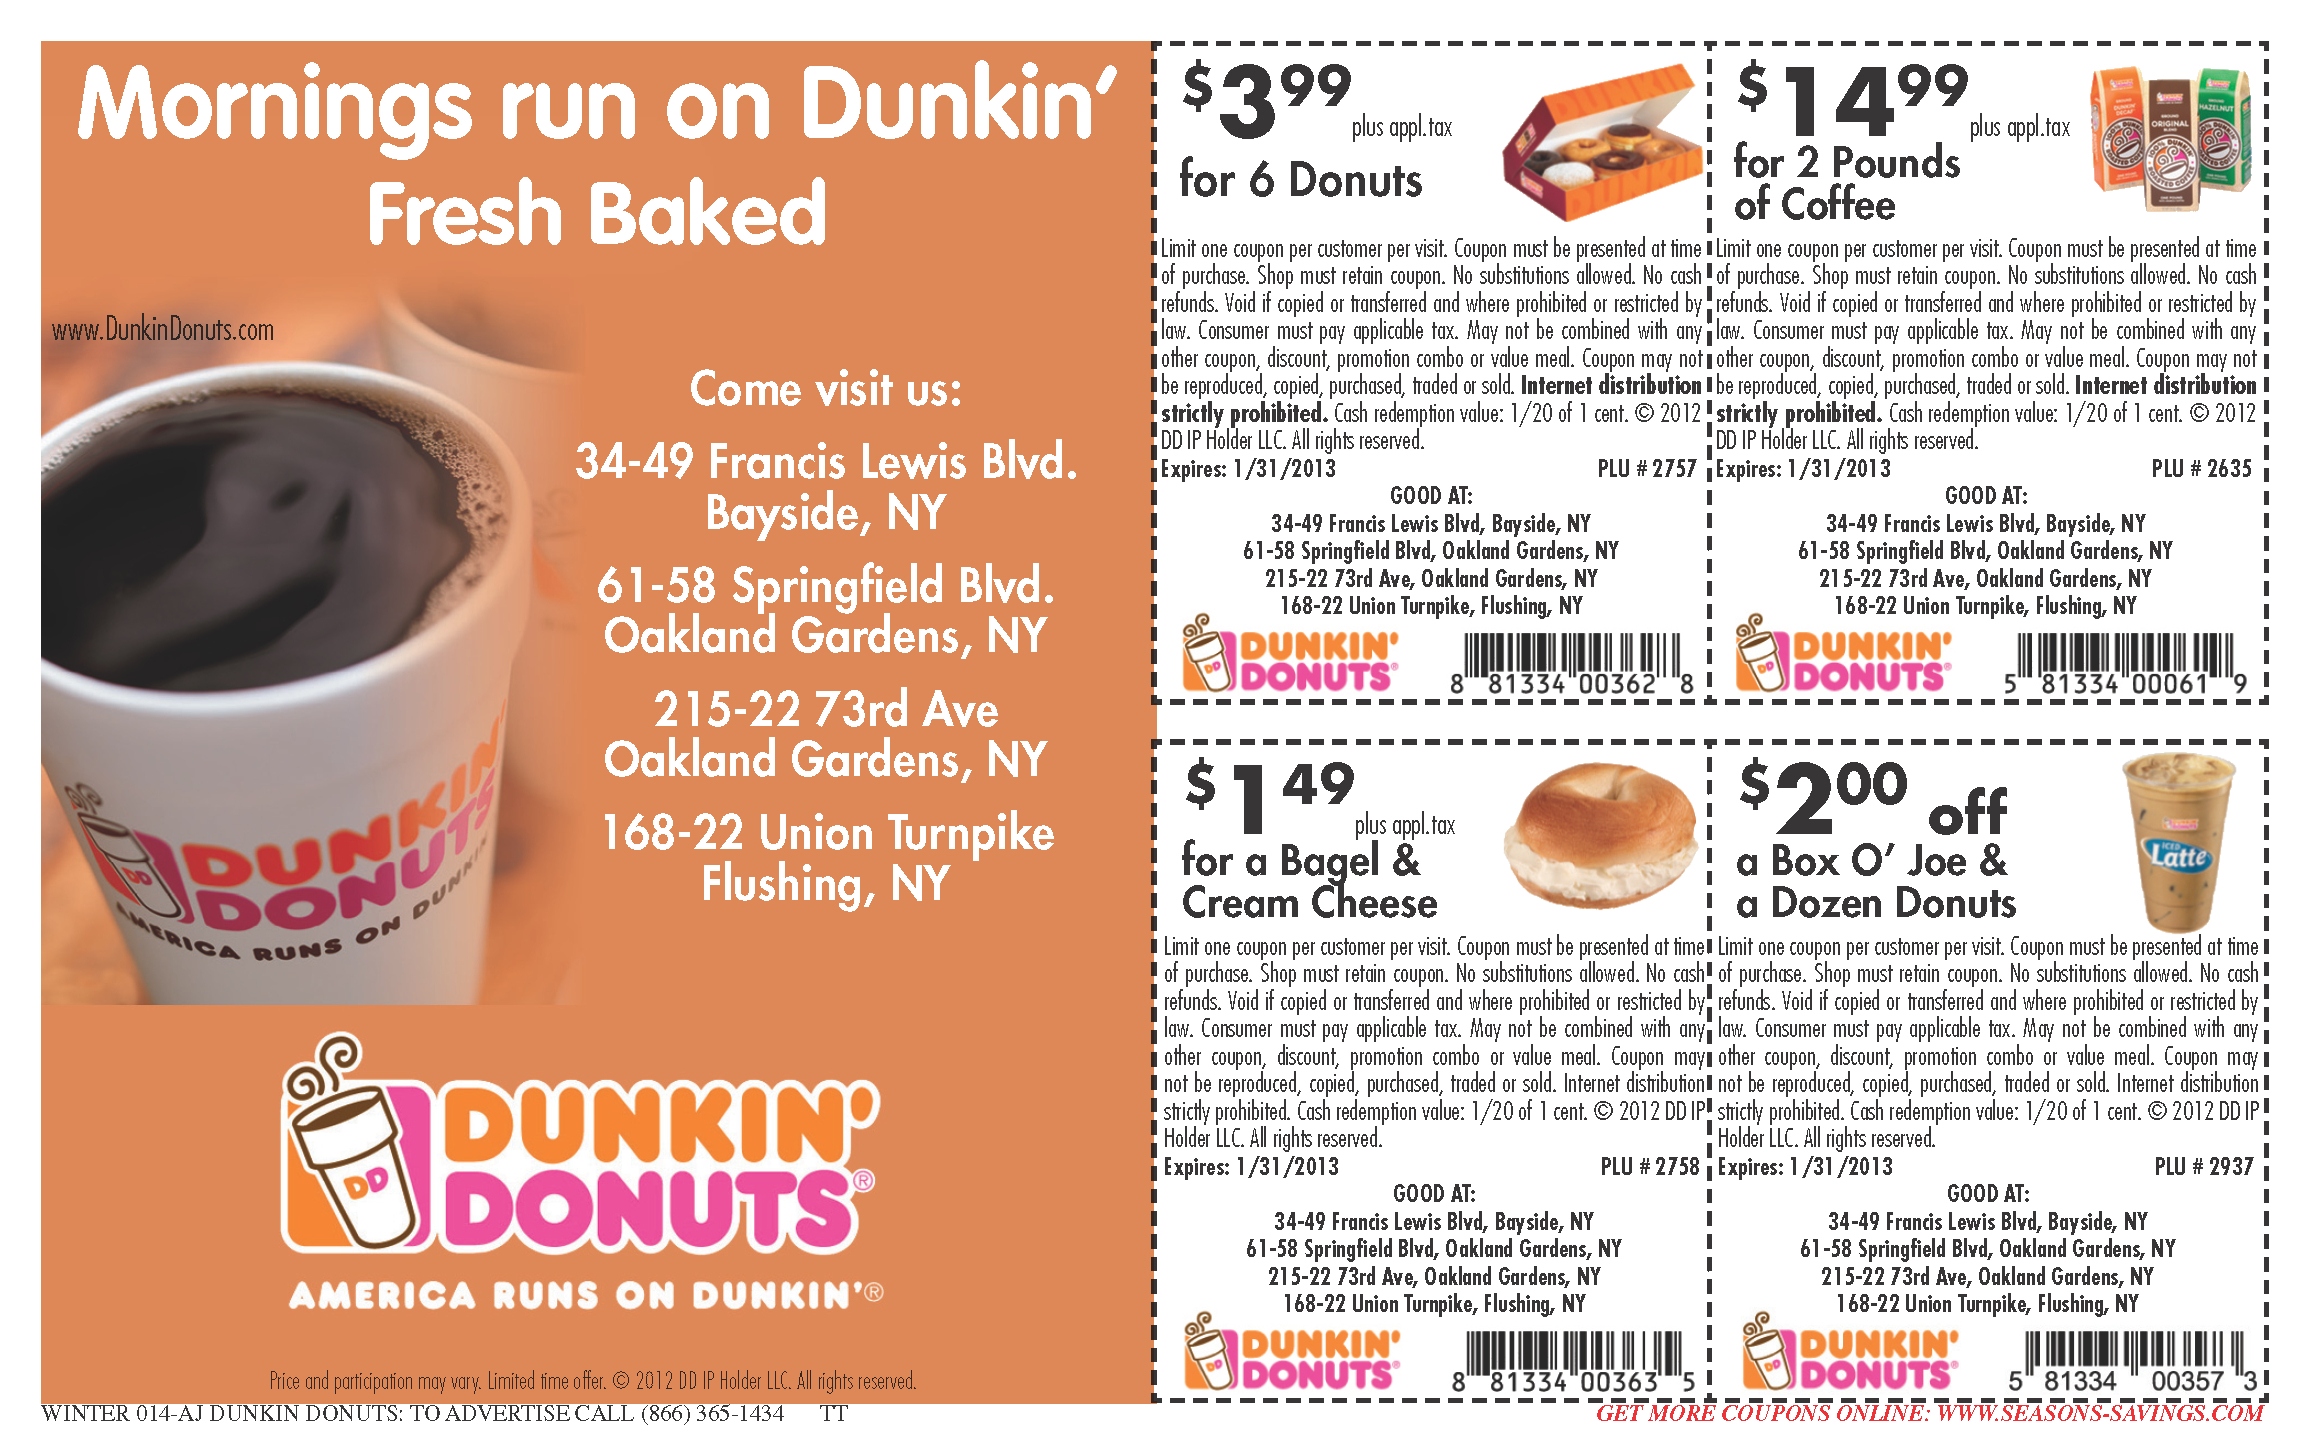 Online-Free-Dunkin-Donuts-Coupons-Coffee - Free Coffee Coupons Printable